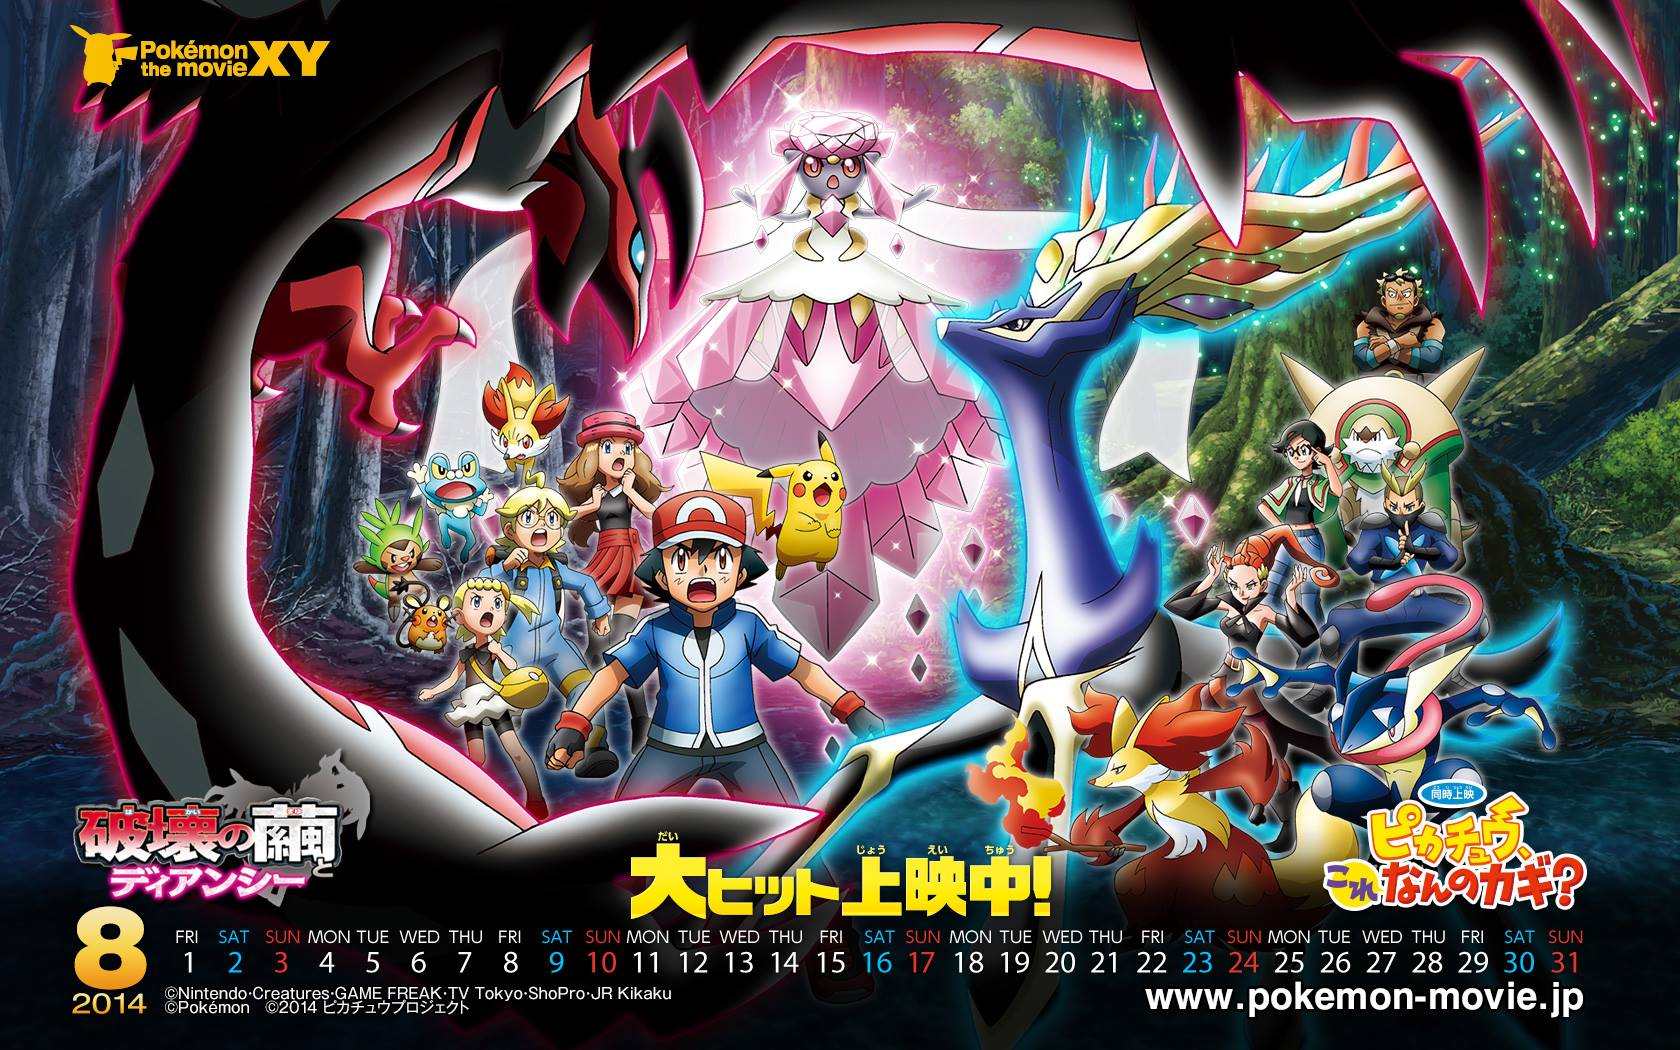 Pokémon Afbeeldingen Pokemon Xy The Movie Hd Achtergrond And